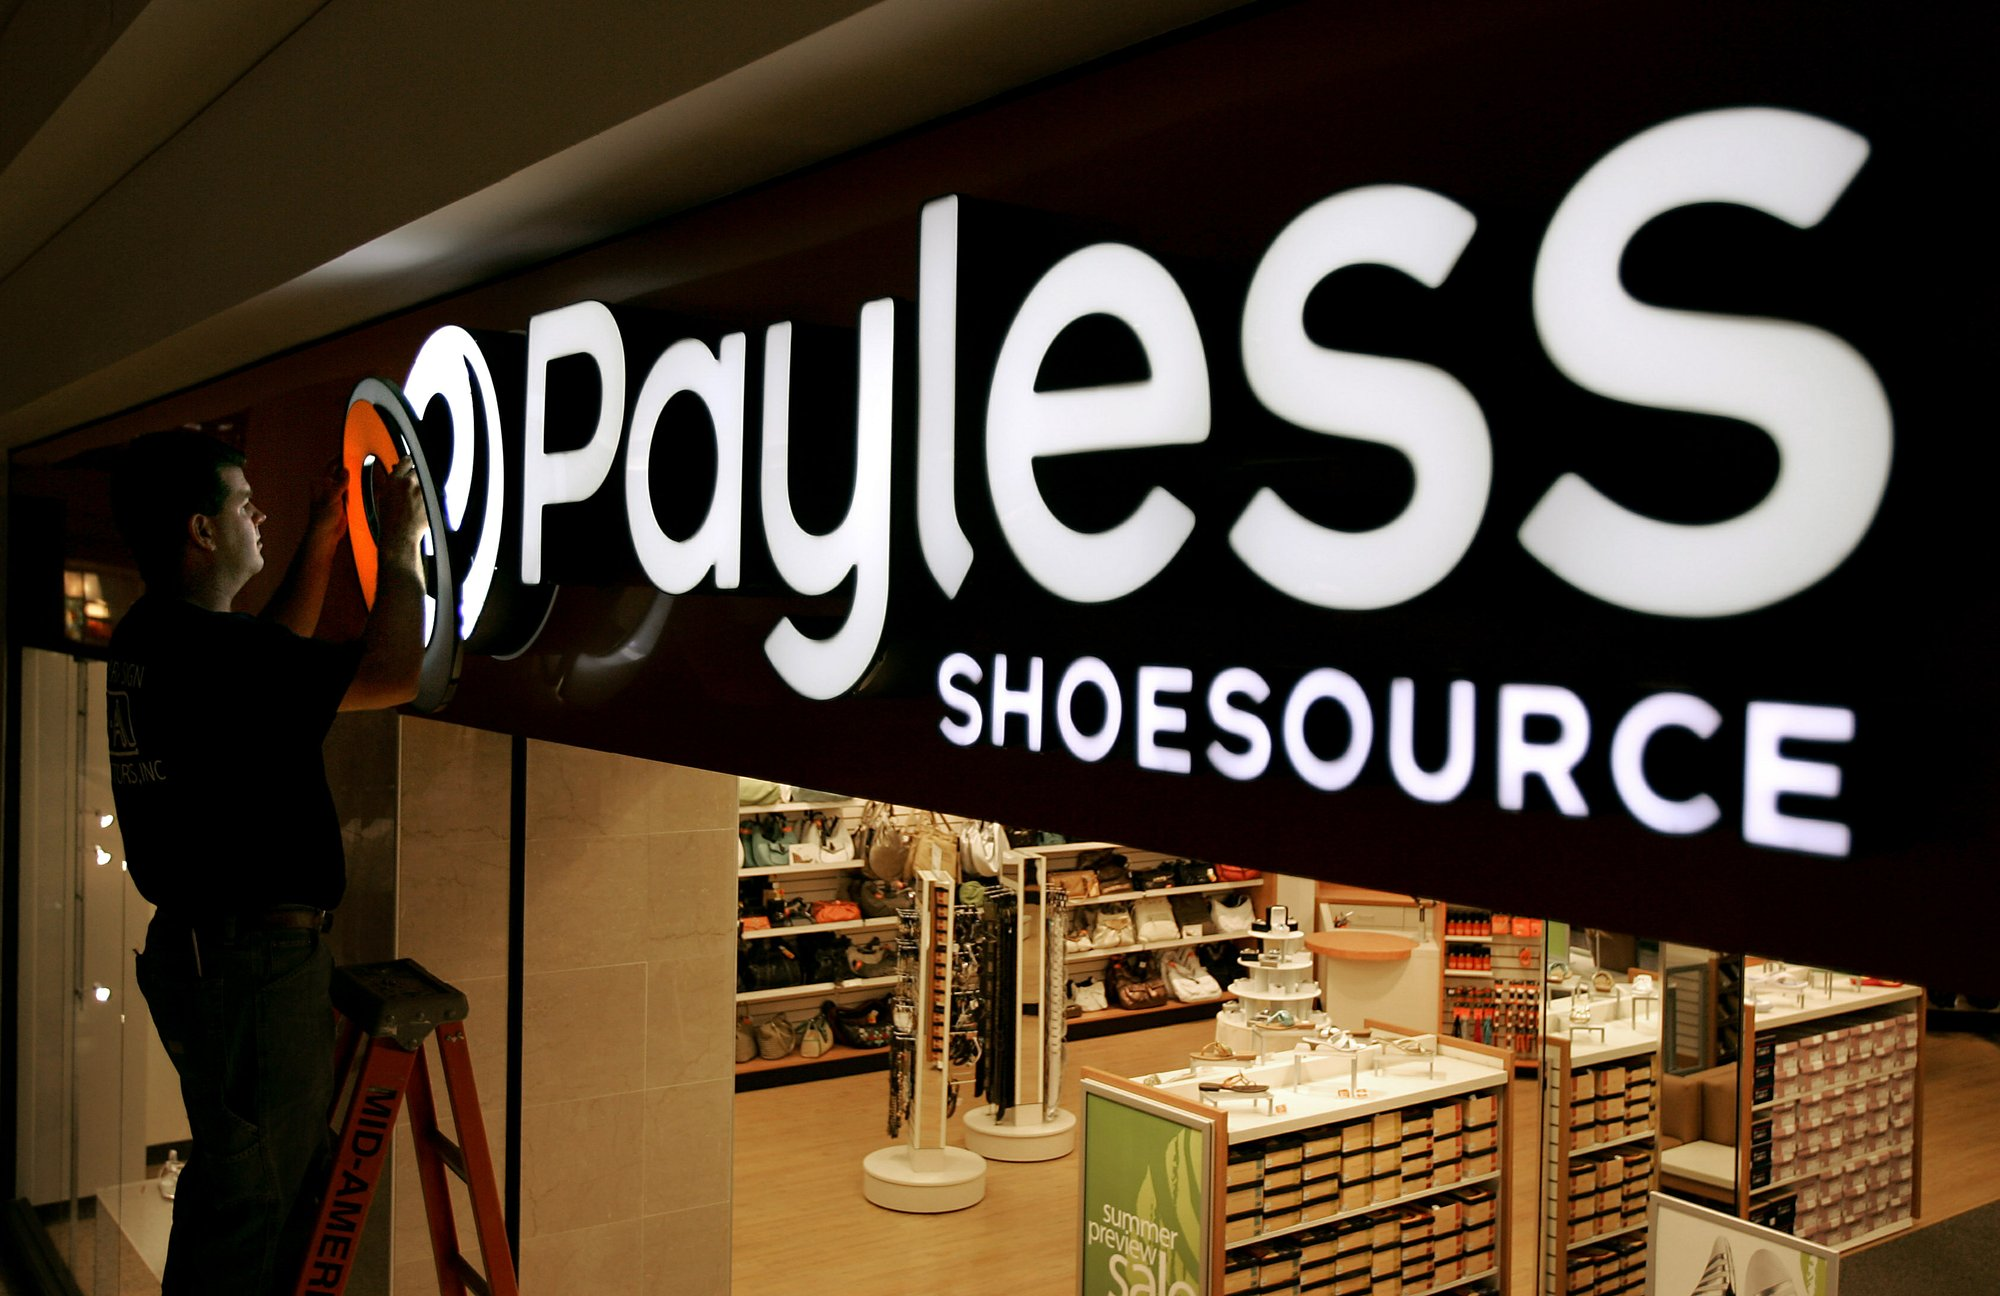 New Jersey Couple Buys Every Pair of Shoes From Closing Store, Donates Them to Women's Shelter